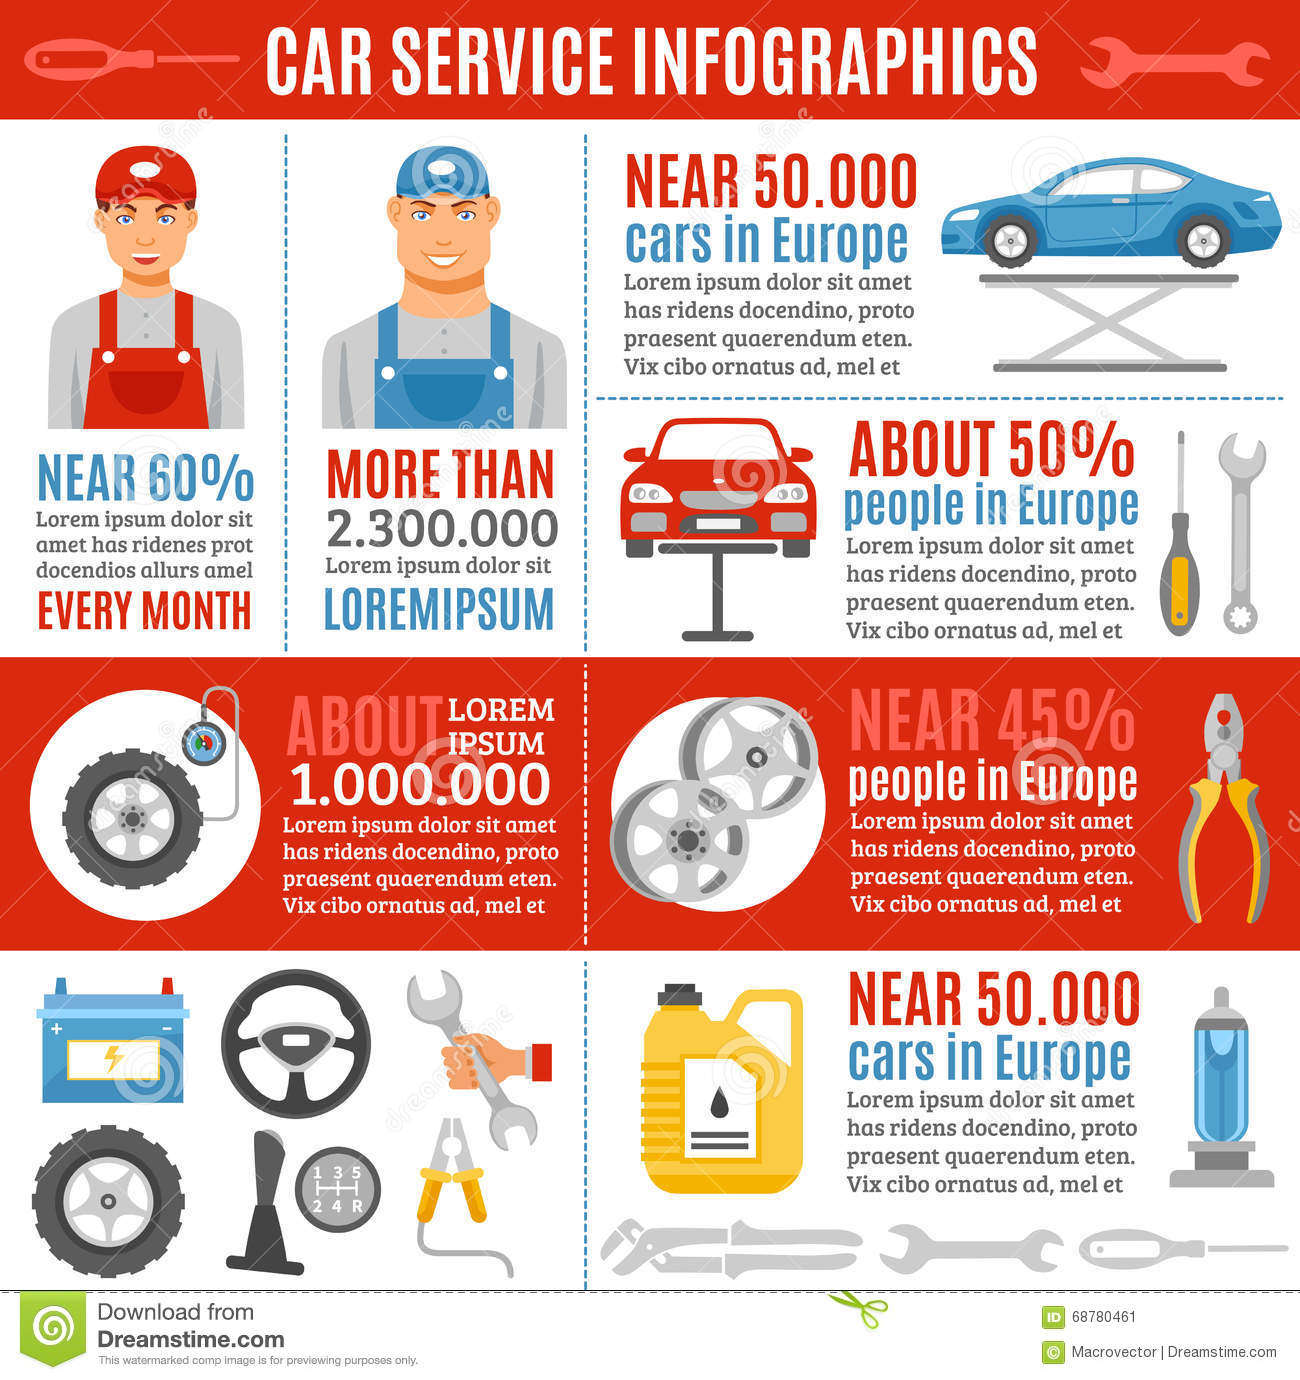 auto-repair-service-flat-infographic-banner-automobile-trucks-poster-information-statistics-european-maintenance-68780461.jpg